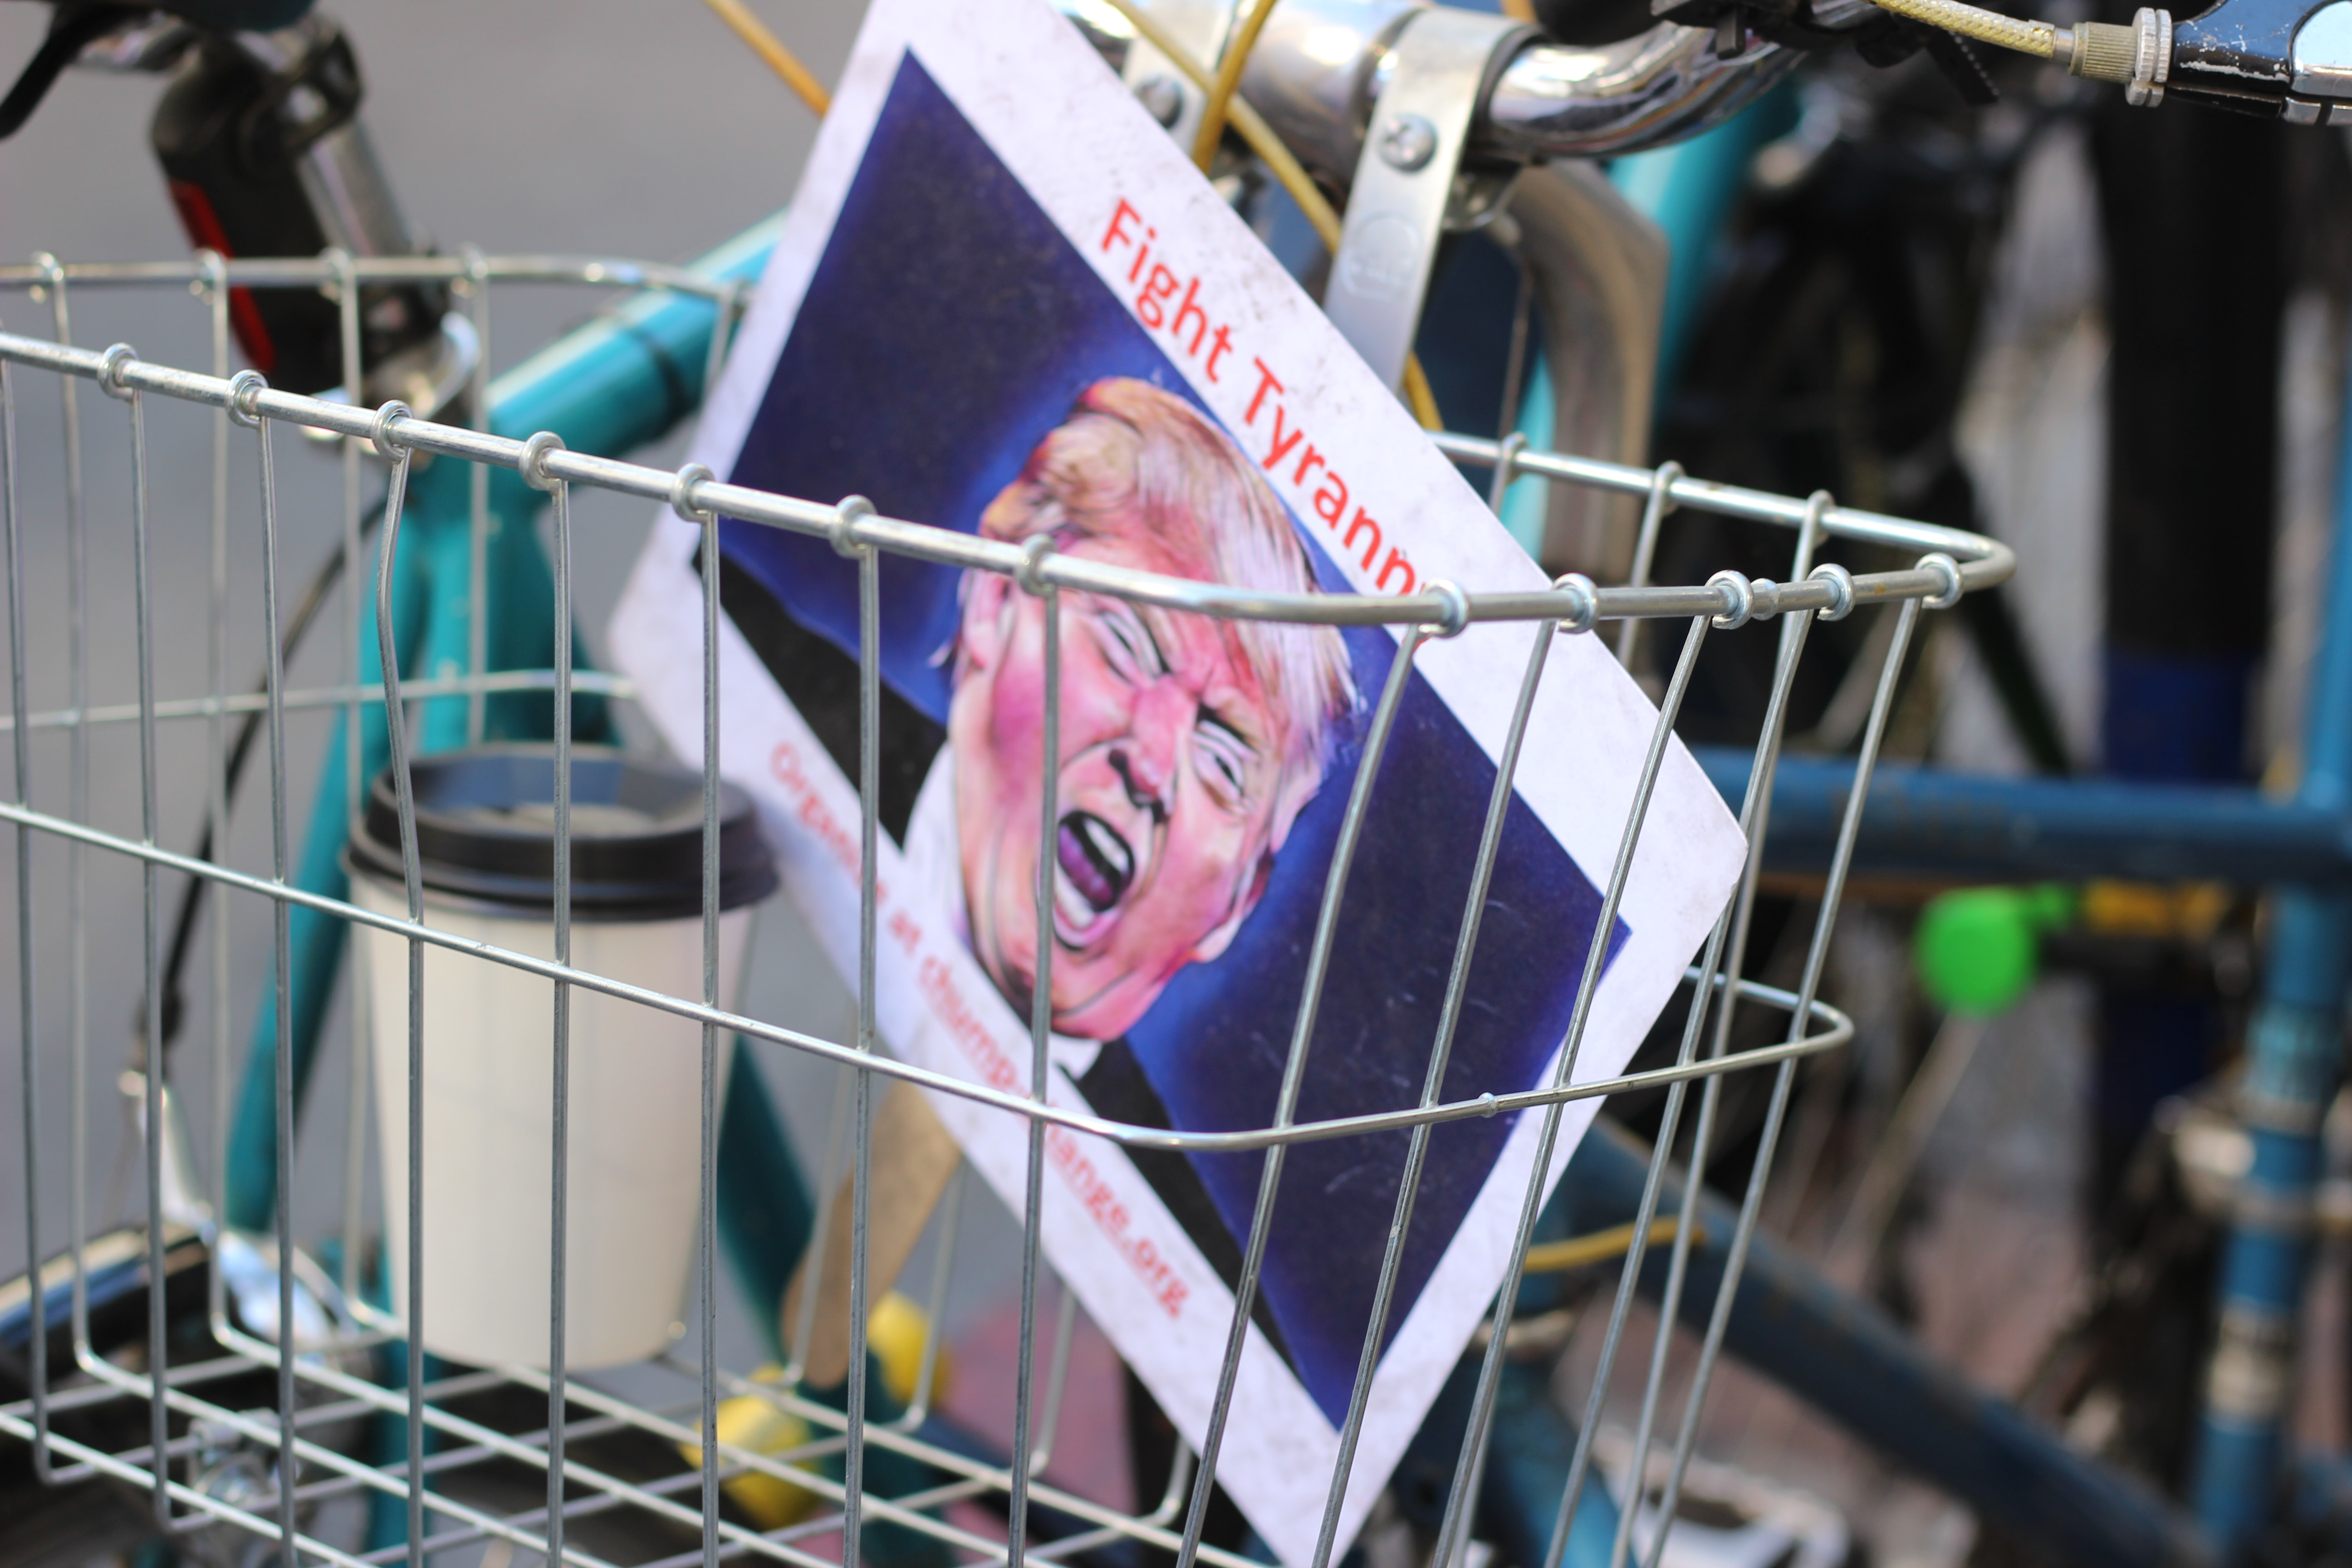 Donald Trump paper inside bicycle basket